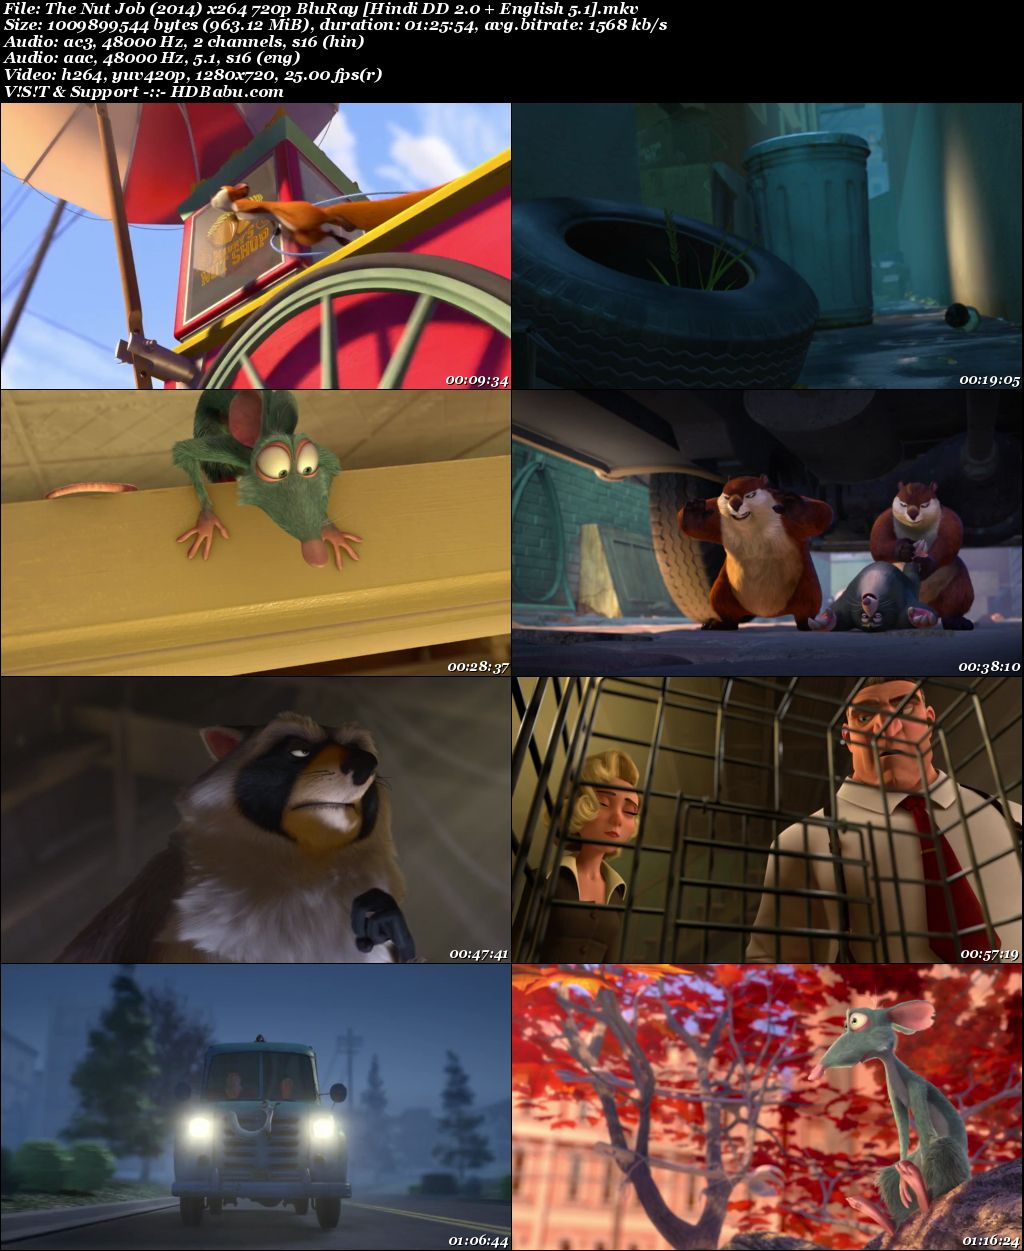 The Nut Job (2014) x264 720p BluRay [Hindi DD 2.0 + English 5.1] Screenshot